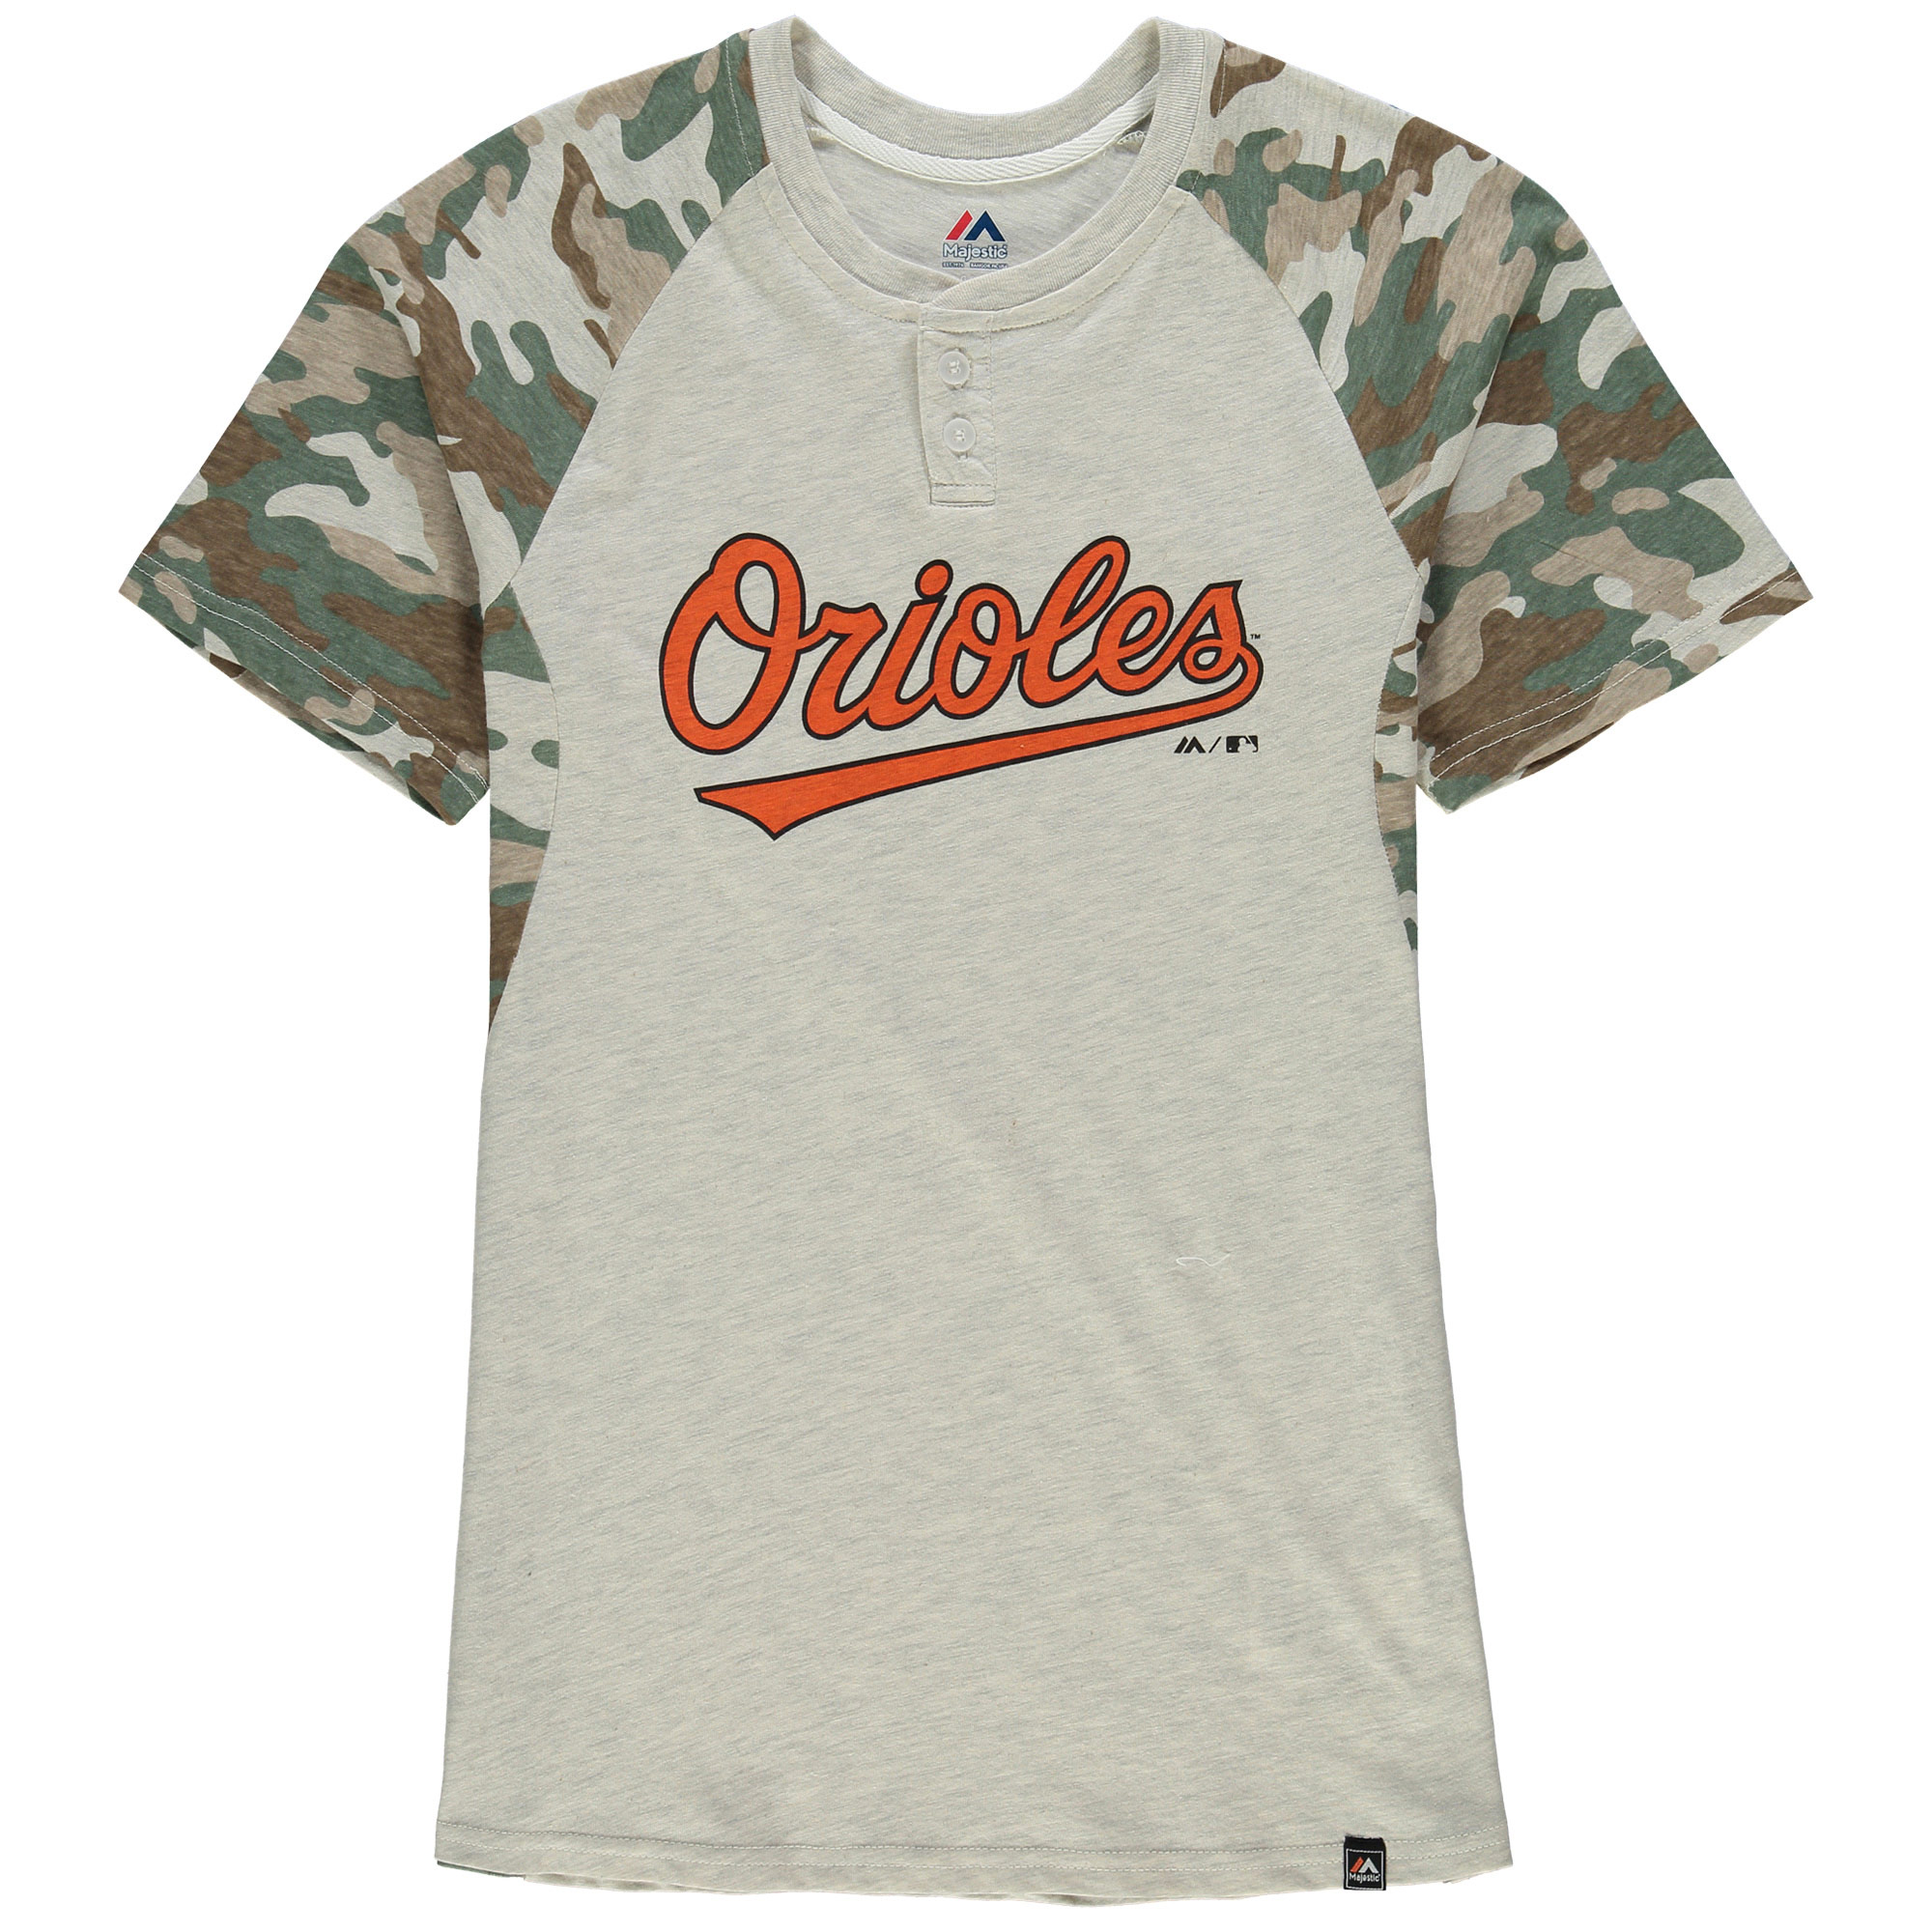 Baltimore Orioles Majestic Youth Base Stealer Henley T-Shirt - Cream/Camo